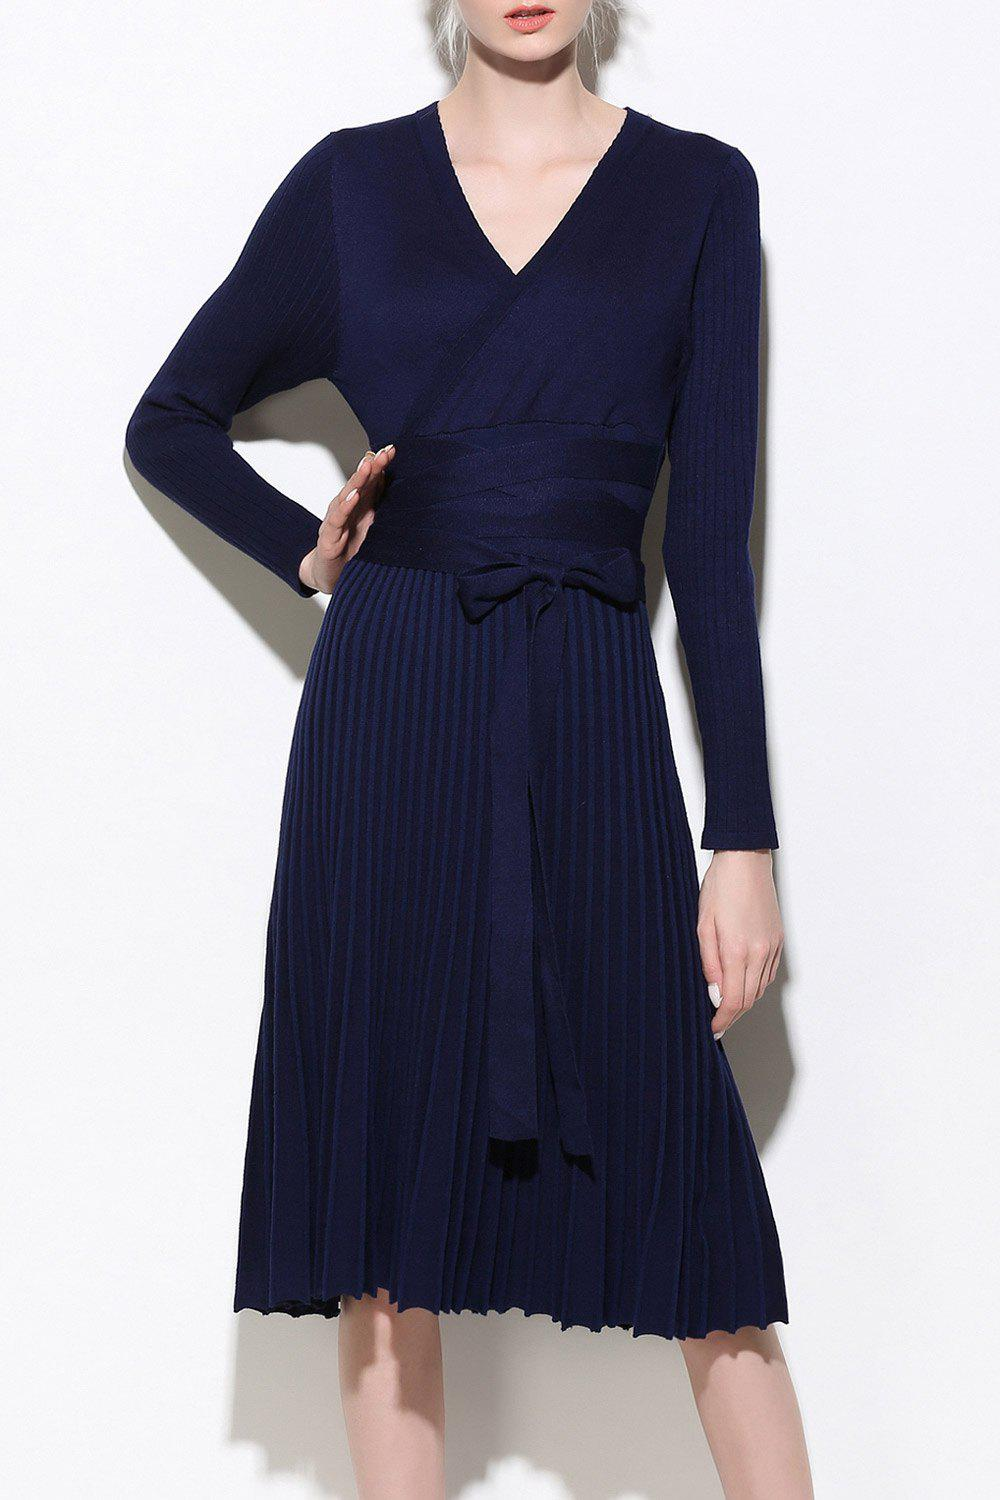 Affordable Wrap Long Sleeve A-Line Jumper Dress